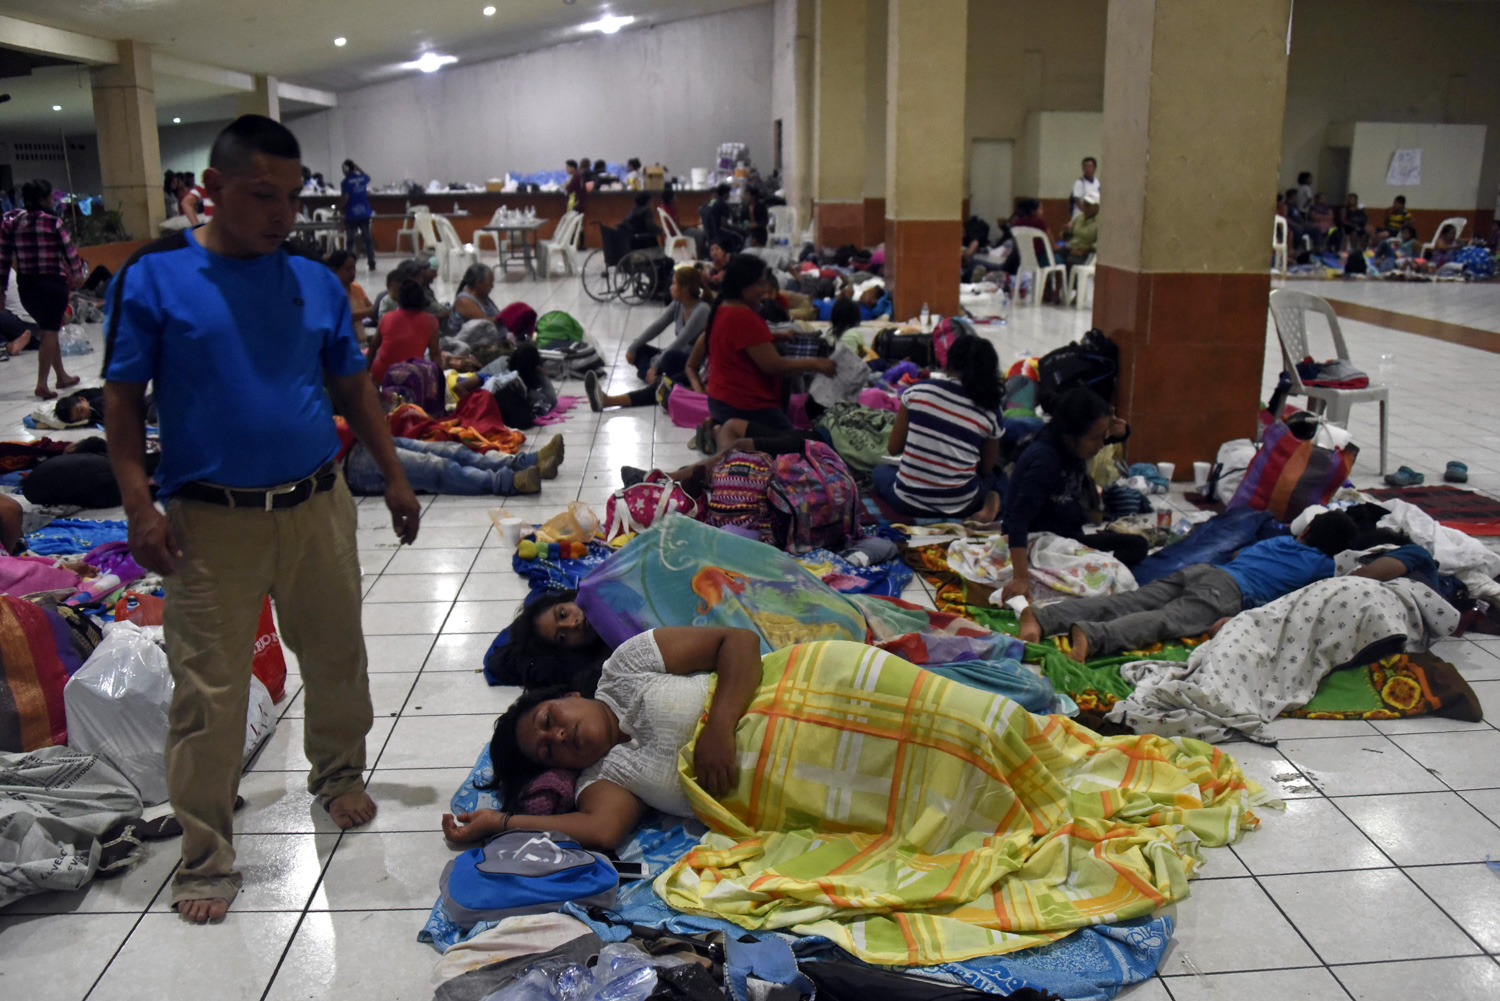 "<div class=""meta image-caption""><div class=""origin-logo origin-image none""><span>none</span></div><span class=""caption-text"">Residents of several communities safeguard in a temporary shelter in Escuintla department, 35 km south of Guatemala City on June 3, 2018, for fear of new outbursts of Fuego volcano (JOHAN ORDONEZ/AFP/Getty Images)</span></div>"